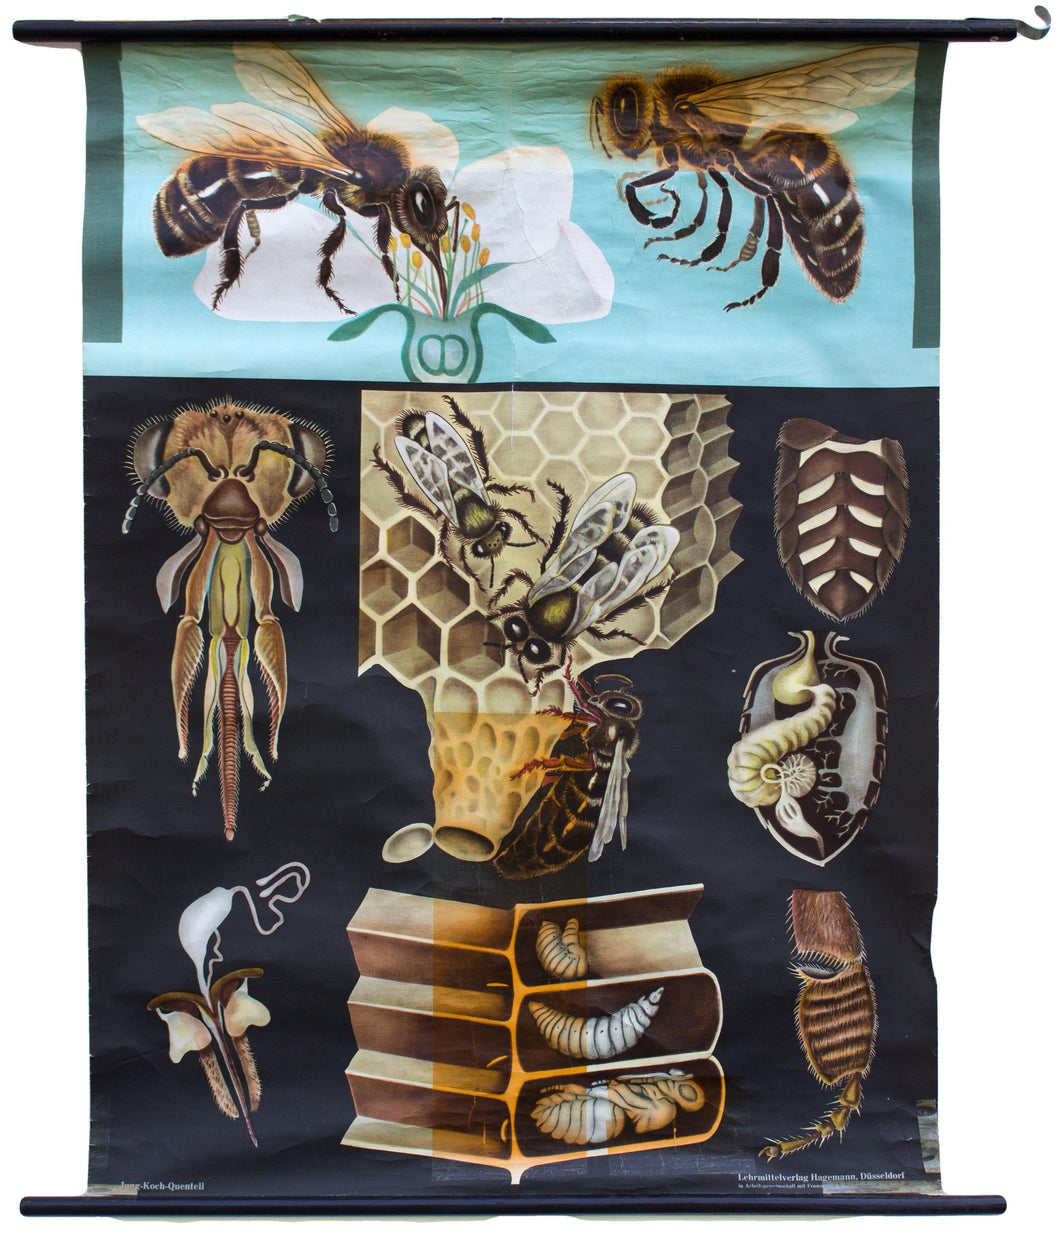 Bee, Jung-Koch-Quentell, 1968